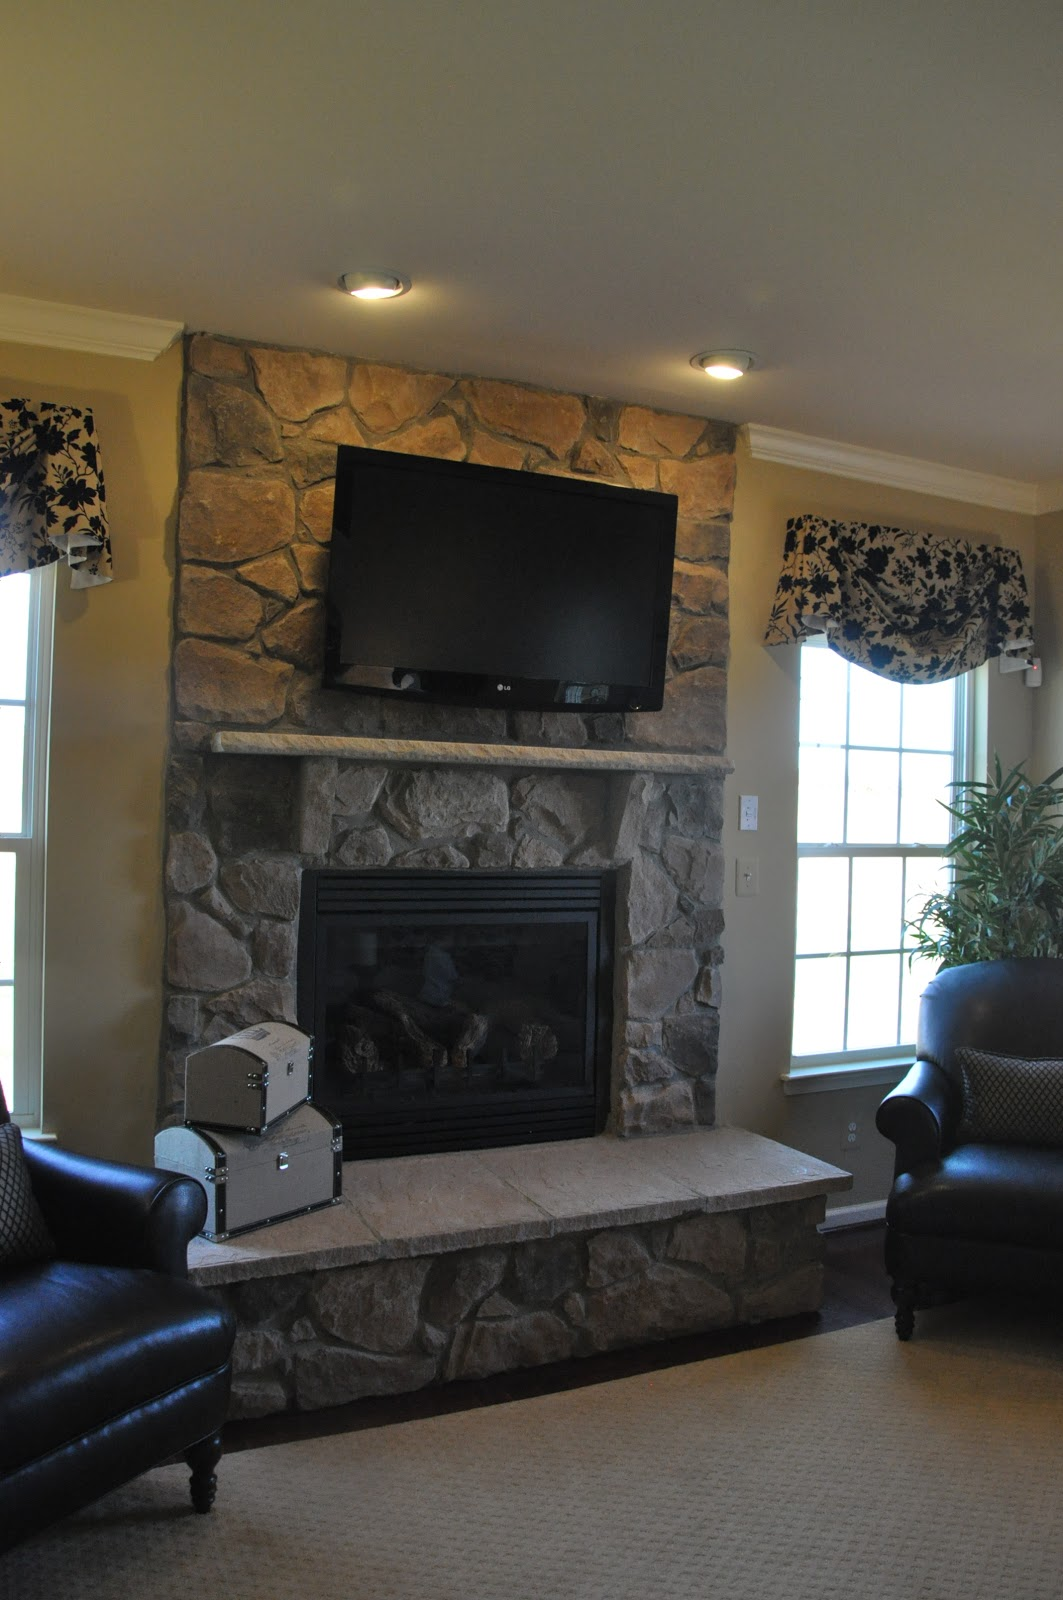 Flagstone Fireplace Building A Ryan Homes Ravenna Tv Over The Fireplace Or Not